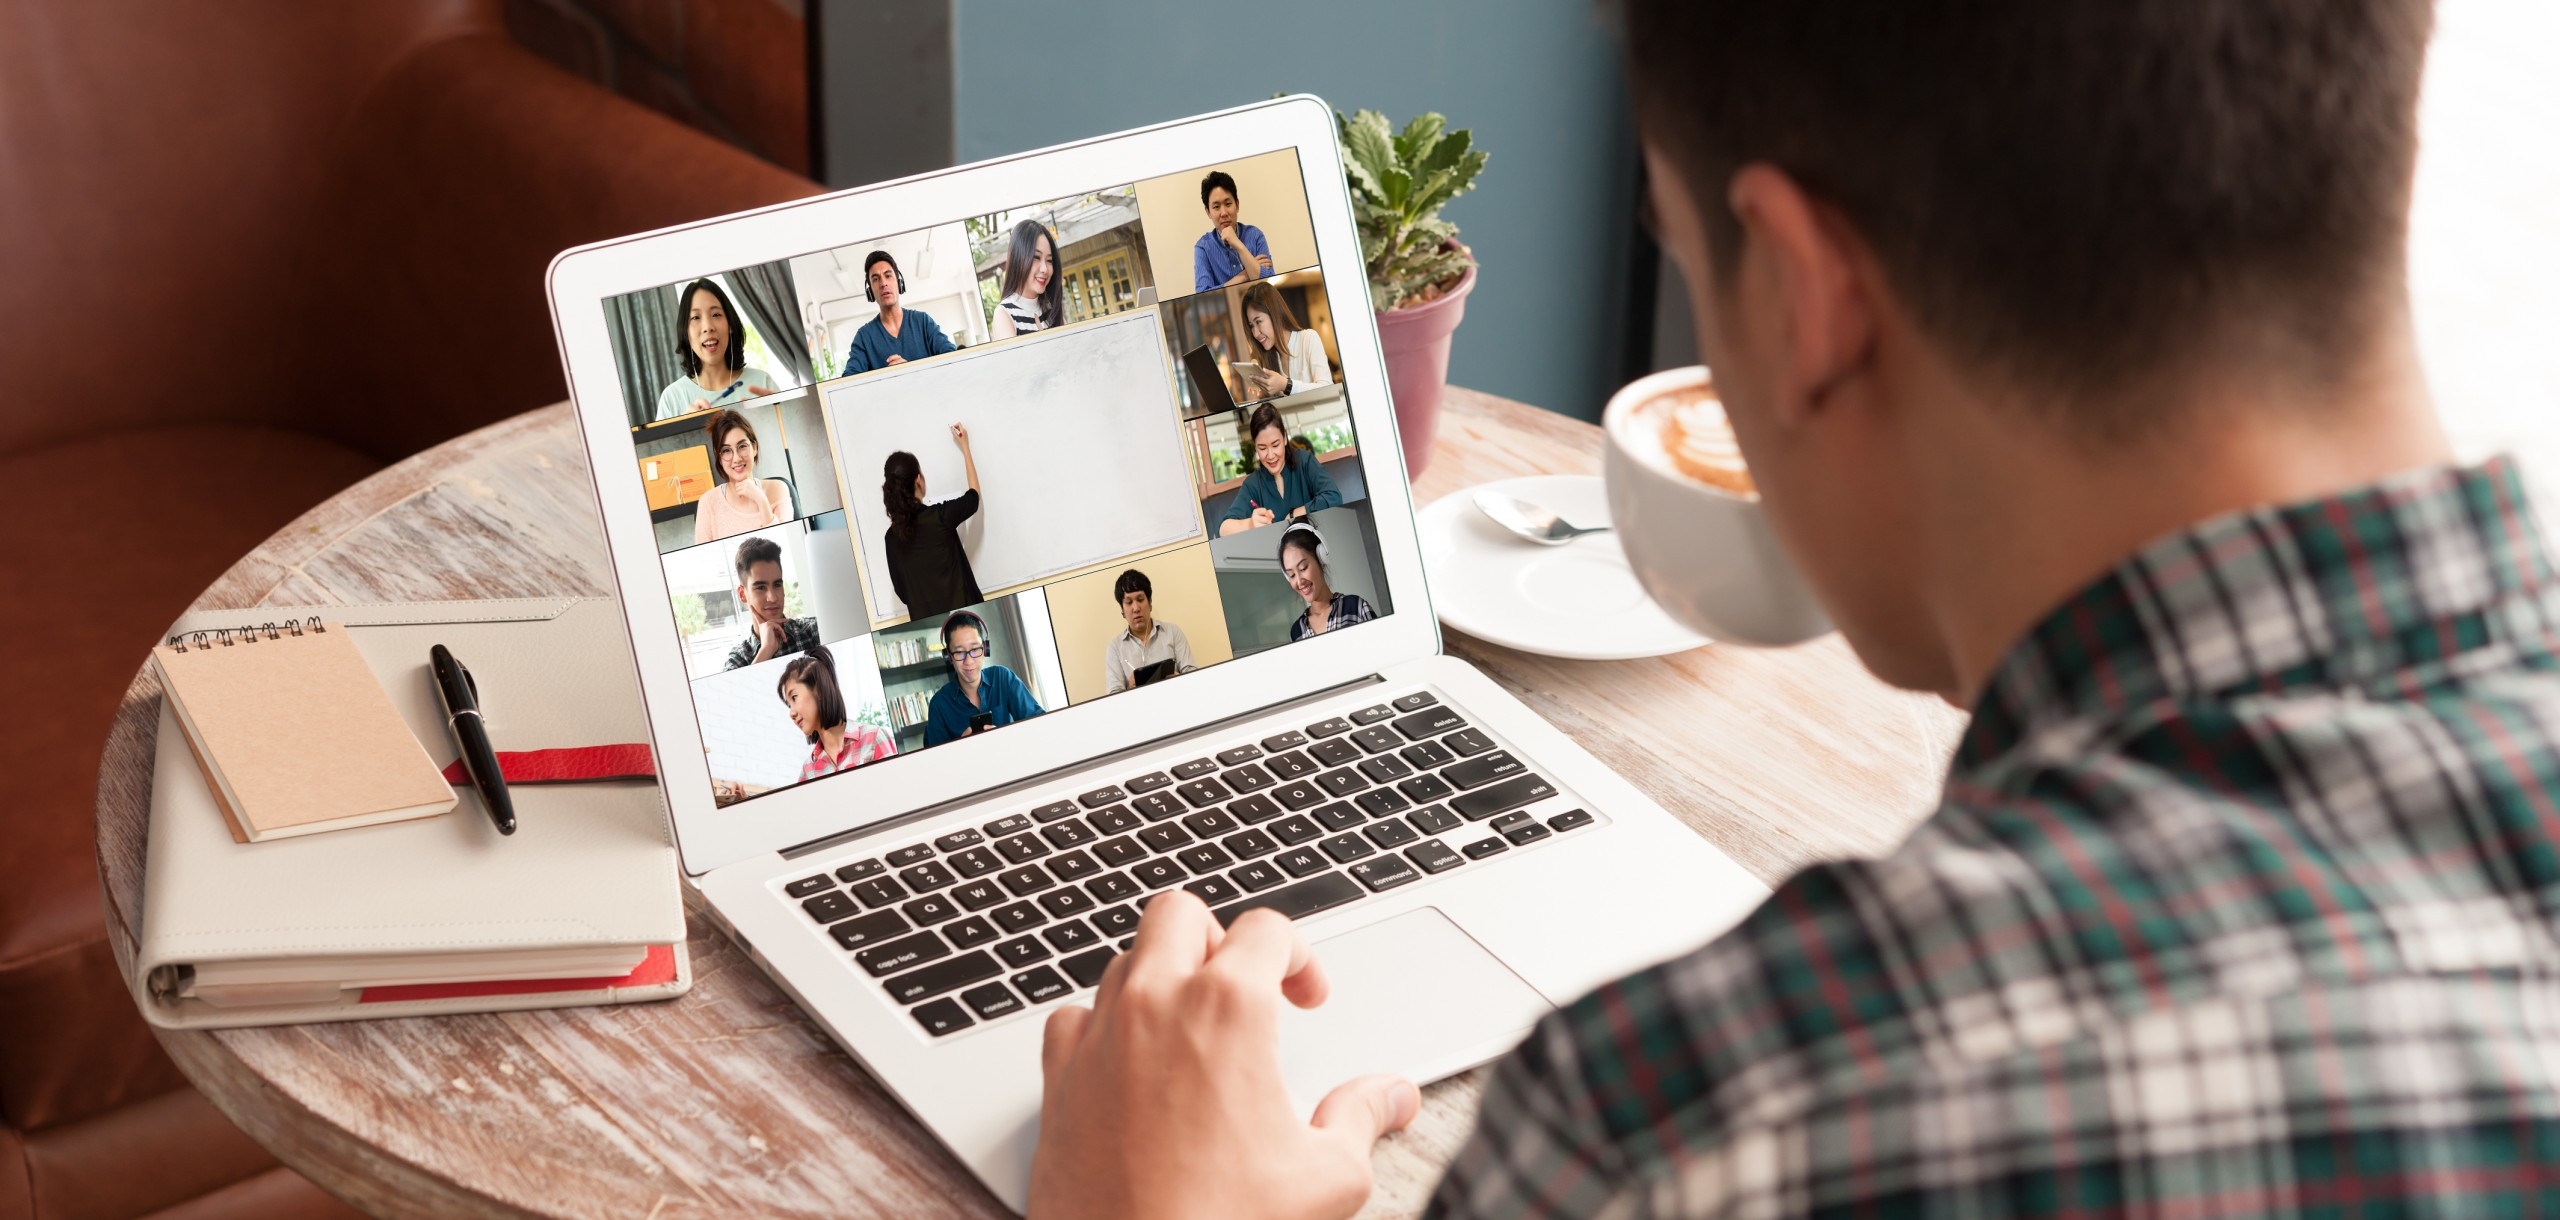 Man at computer using web conferencing software - higher education consulting firm